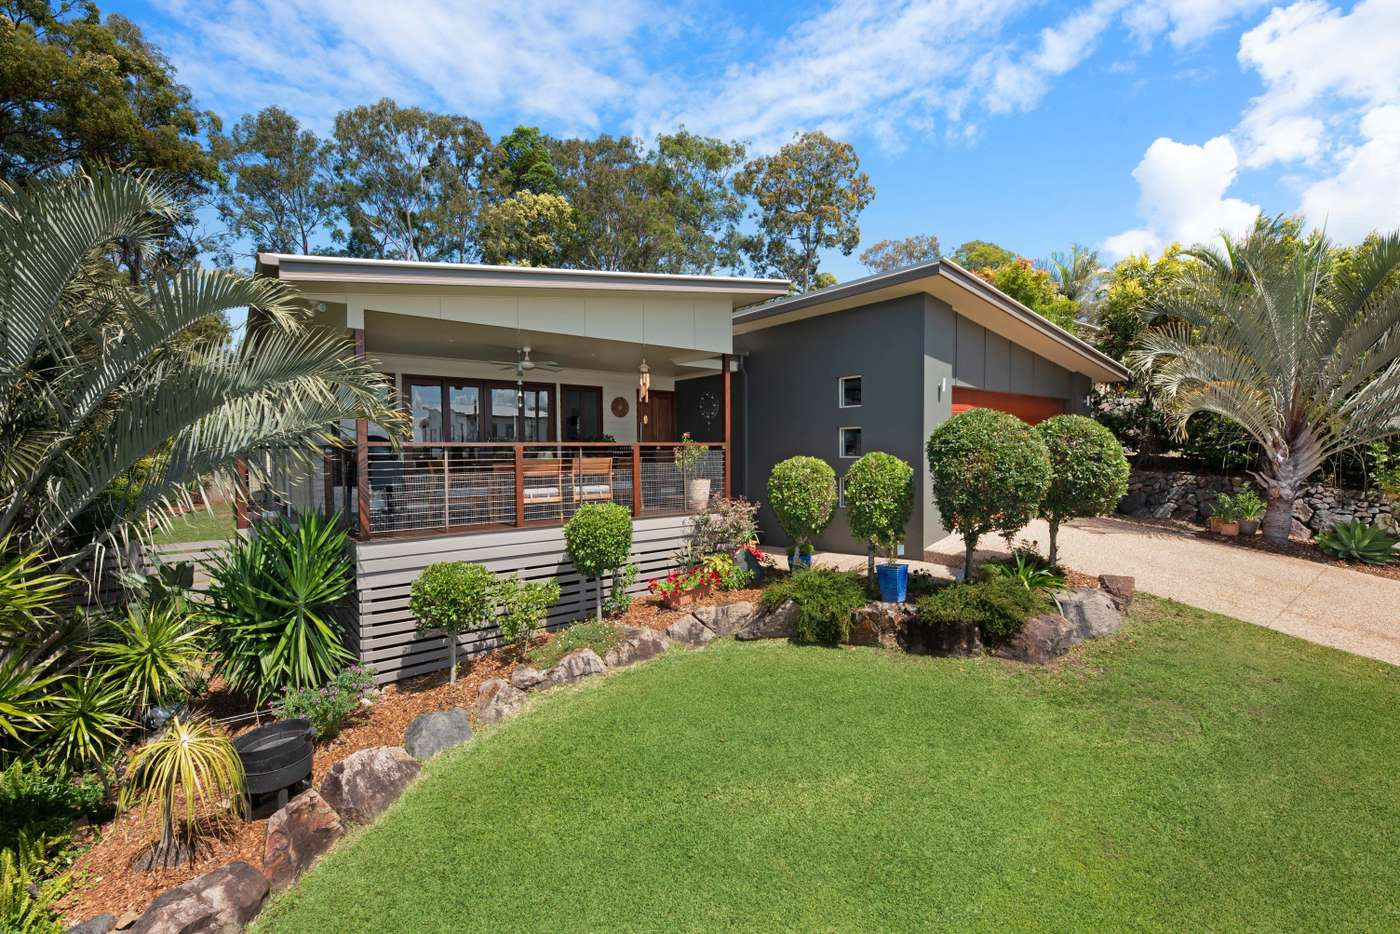 Main view of Homely house listing, 6 Greensboro Place, Little Mountain QLD 4551